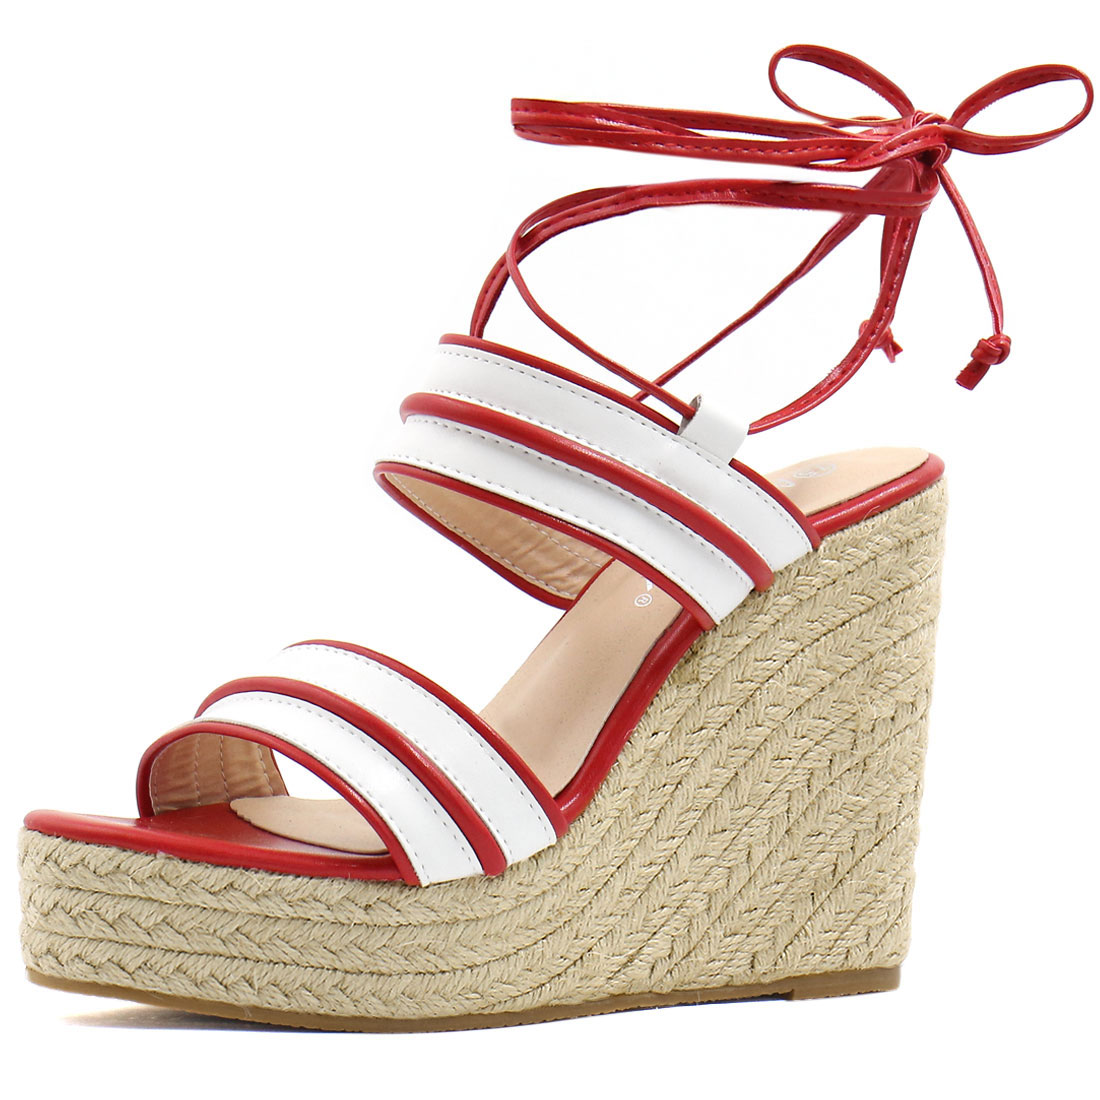 Women Striped Ankle Tie Espadrille Wedge Sandals White Red US 7